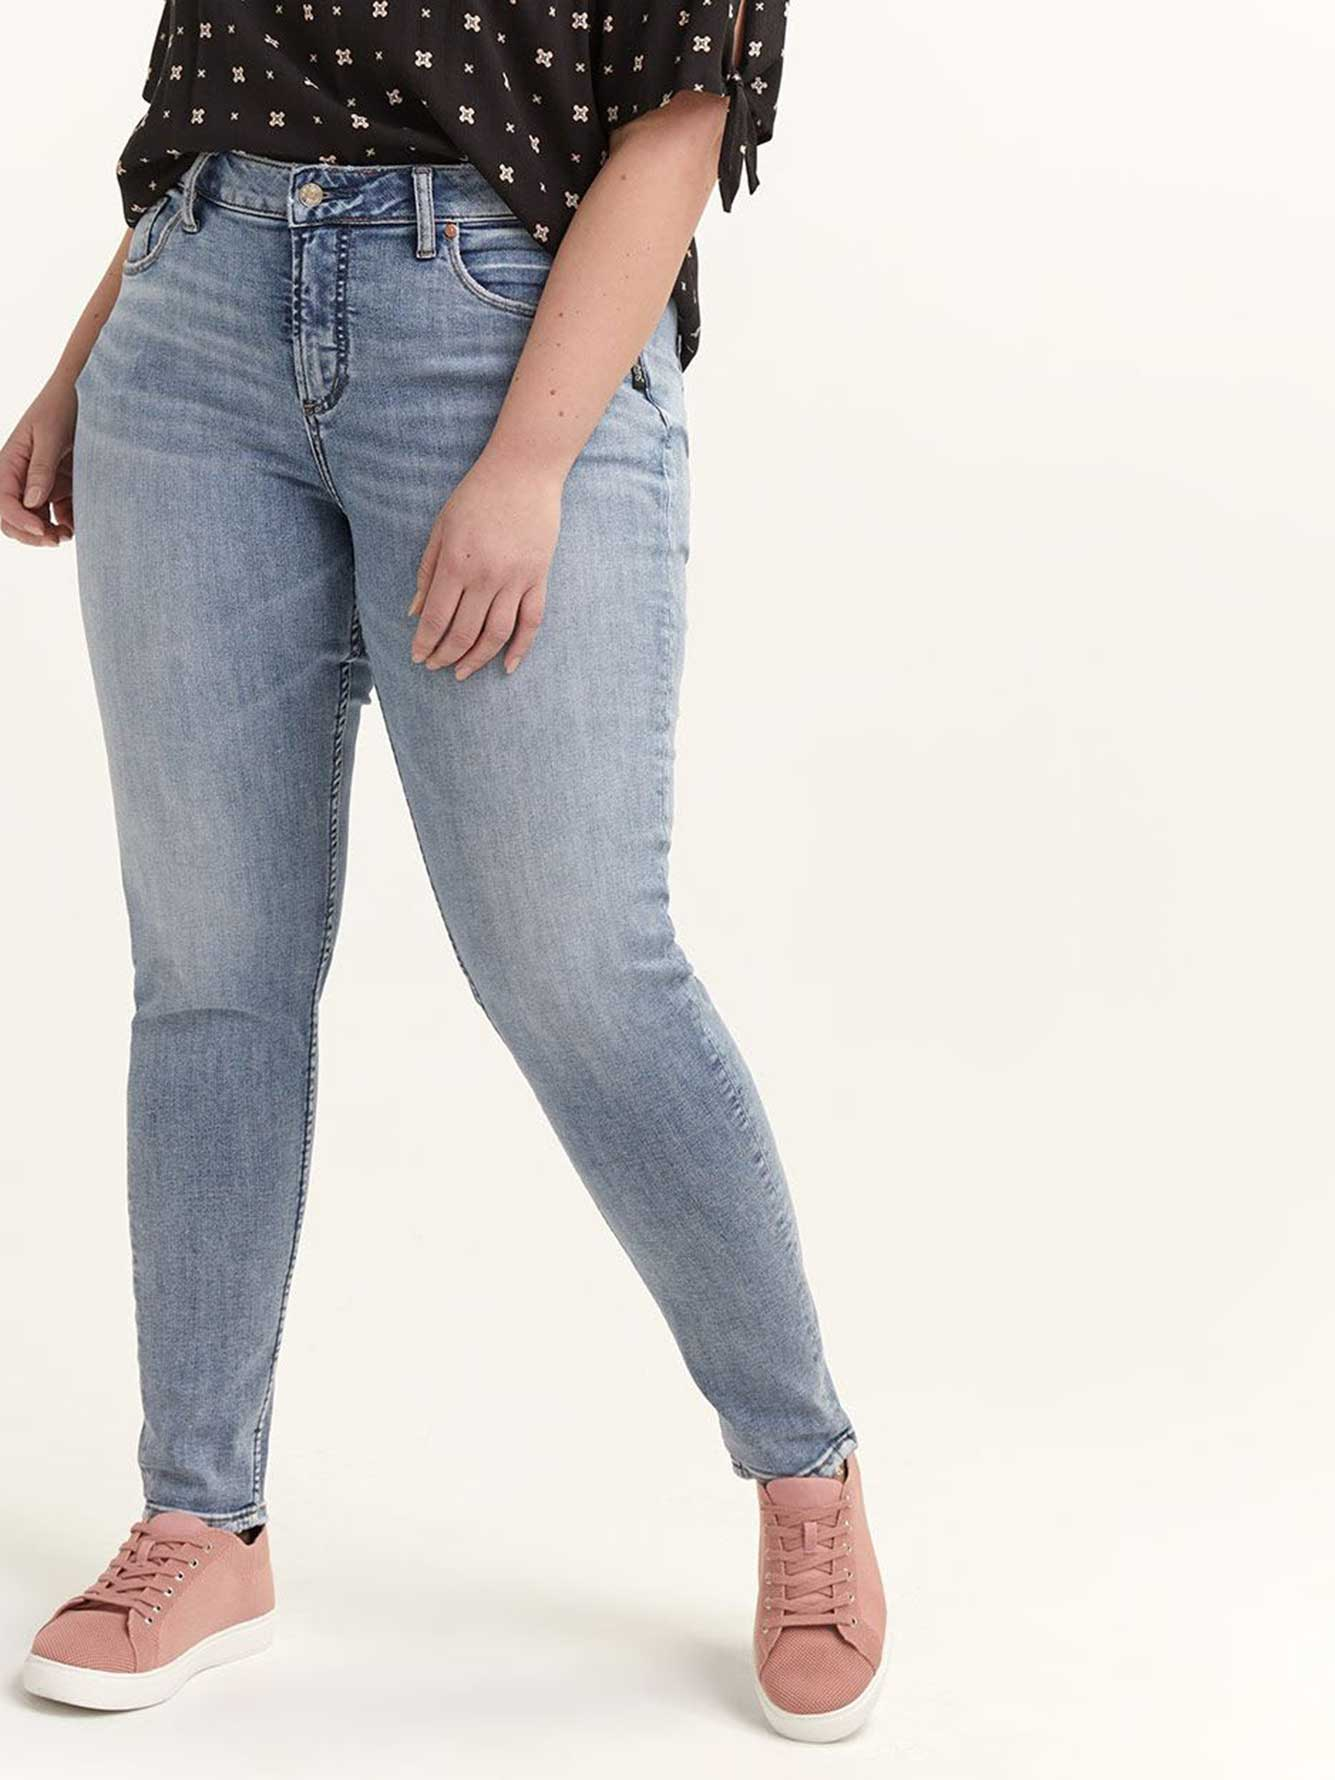 Skinny Avery Jeans - Silver Jeans